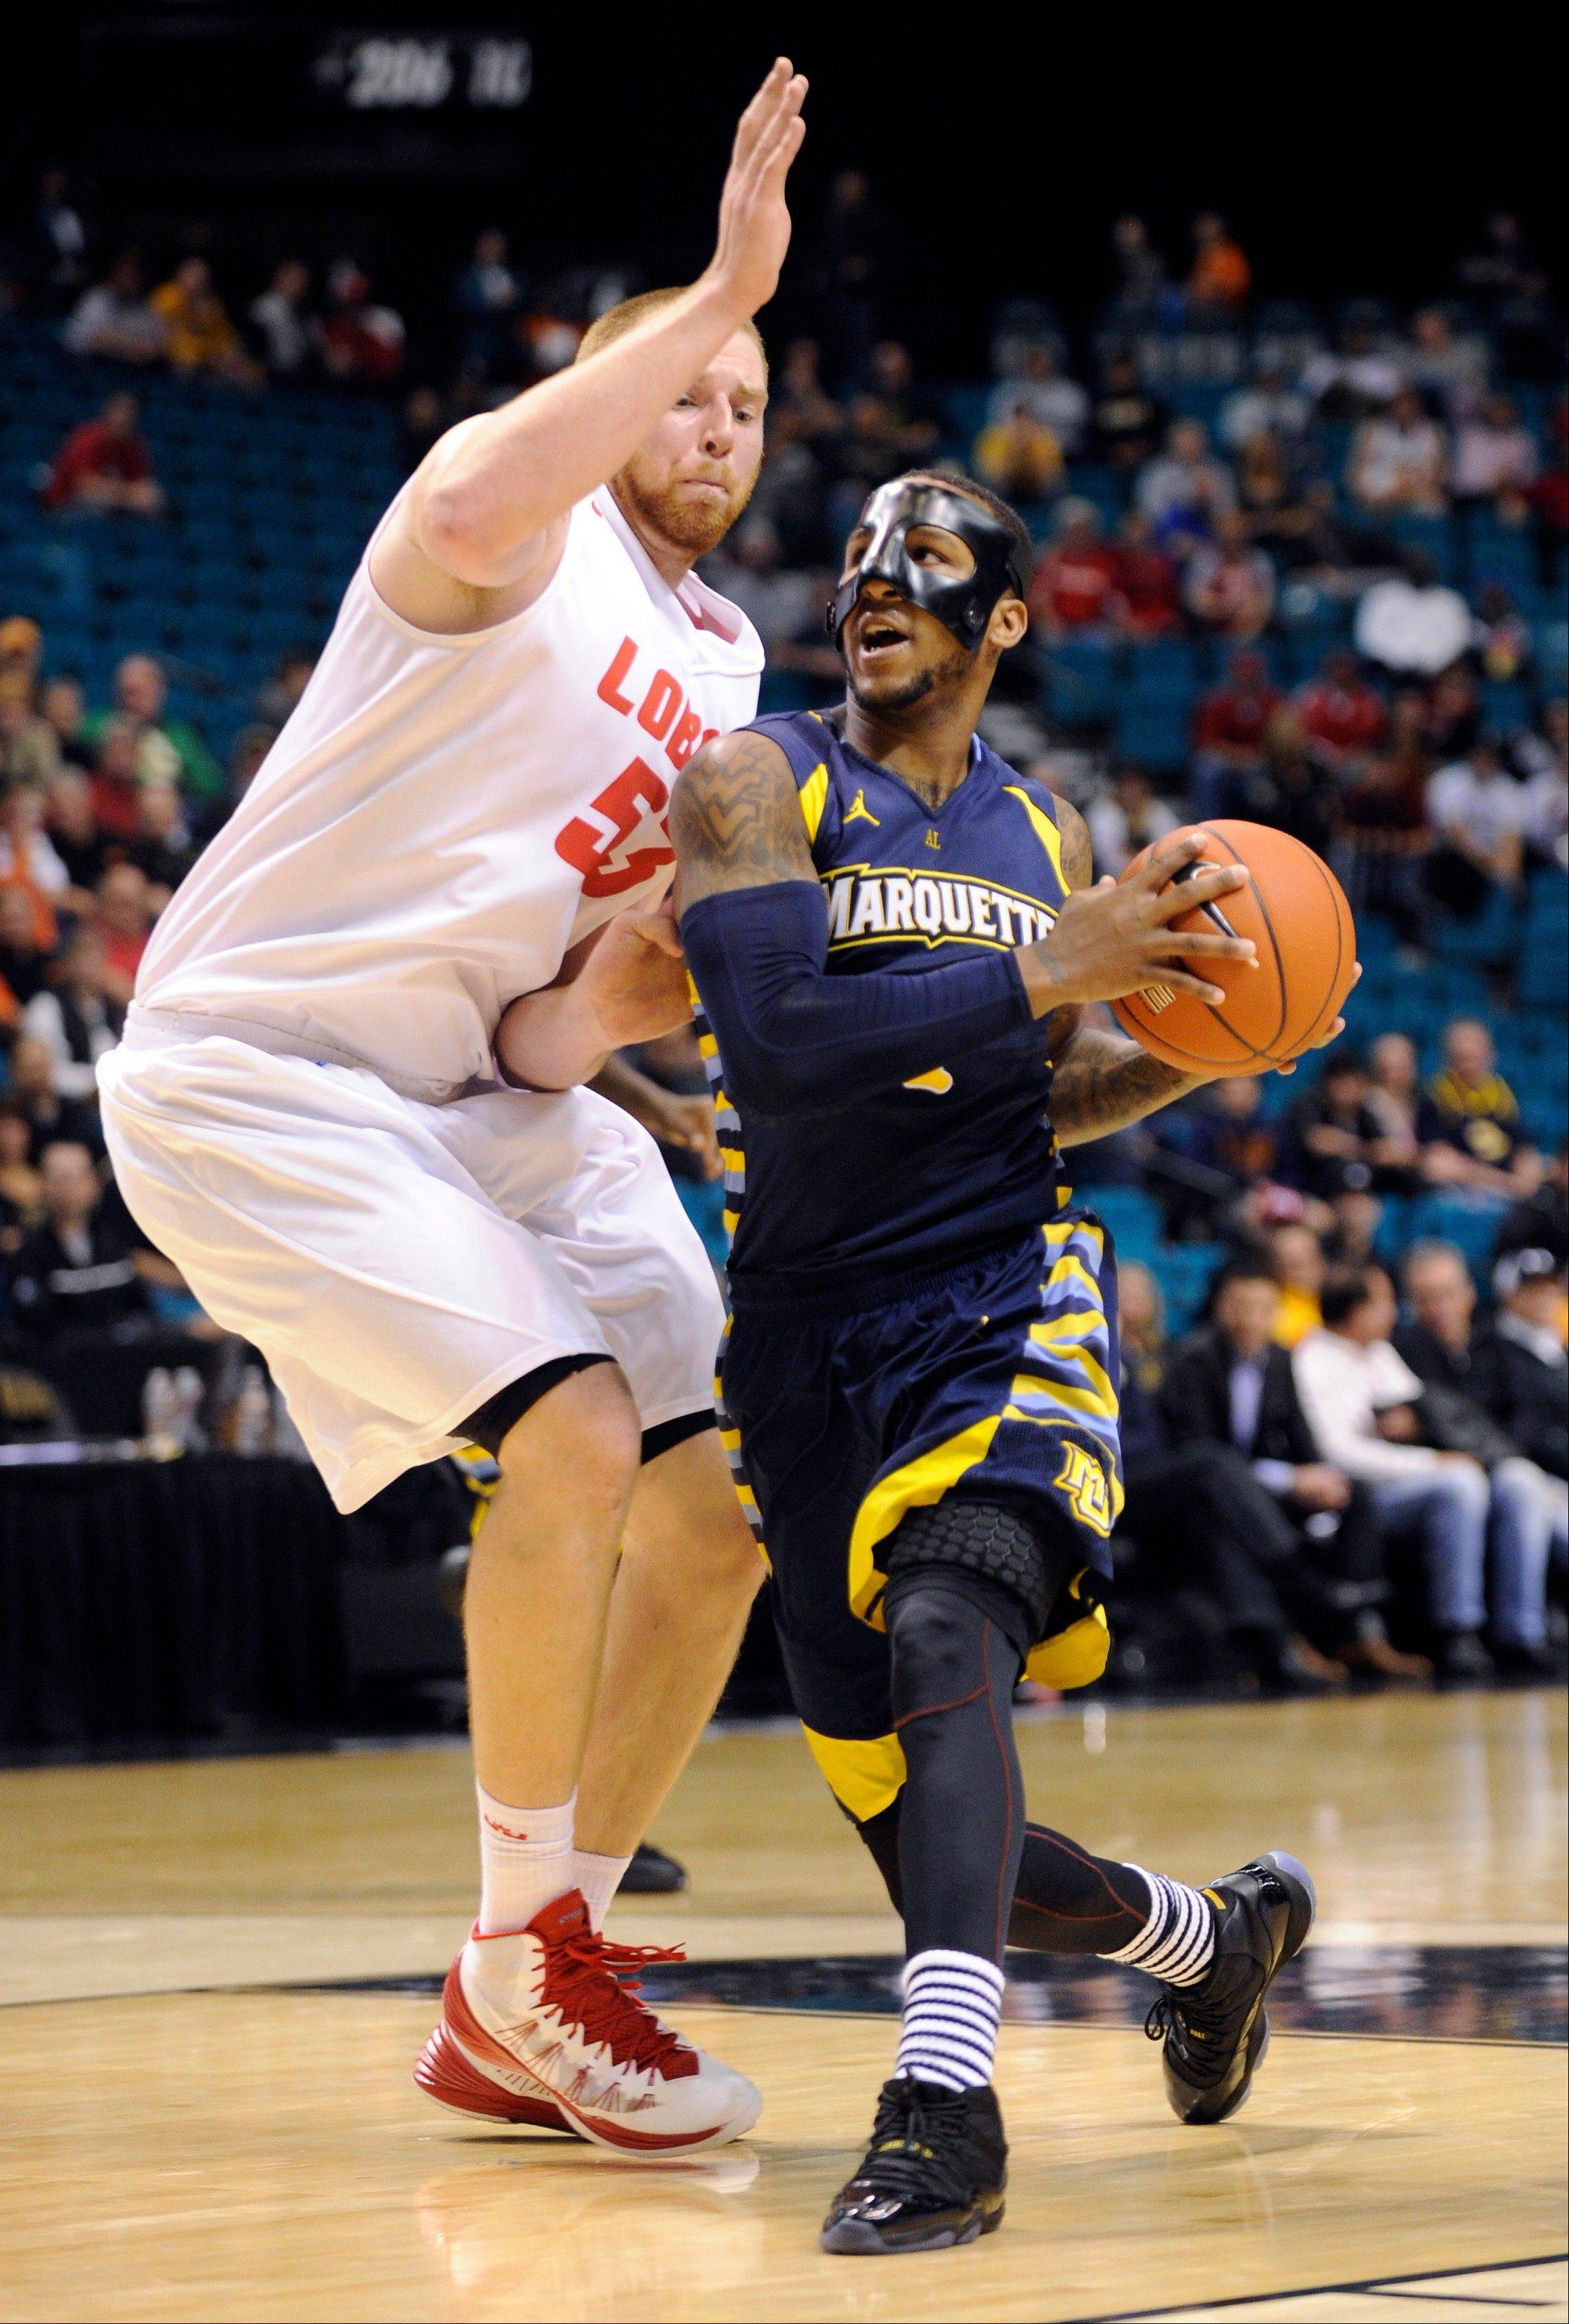 Marquette�s Todd Mayo drives to the basket against New Mexico�s Alex Kirk during the second half of their game Saturday in Las Vegas.